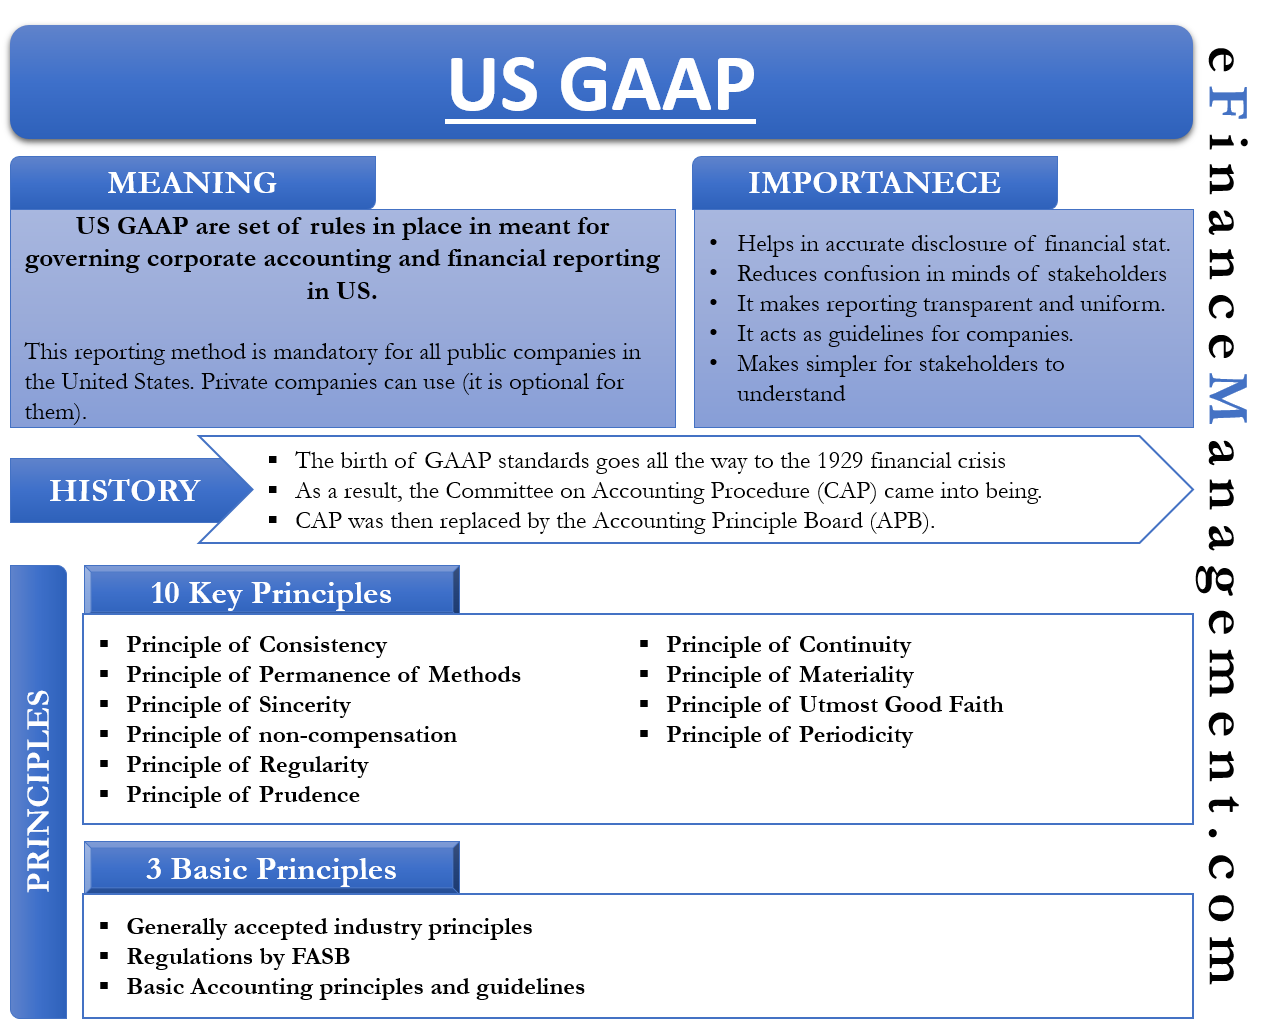 Meaning and Importance of US GAAP